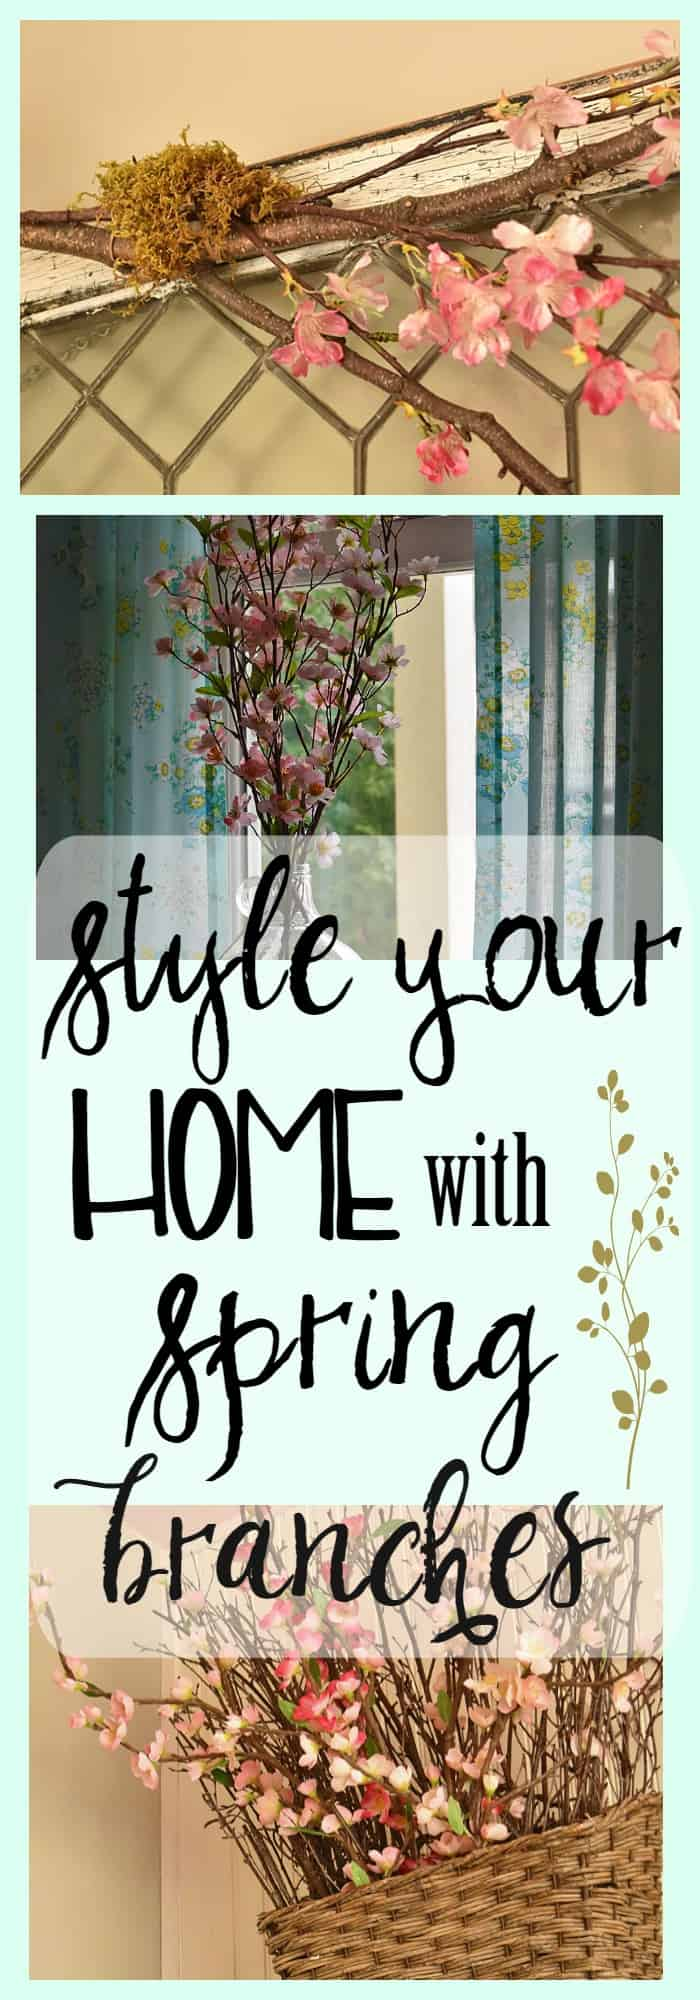 Style Your Home with Spring Branches! Here are some ideas: